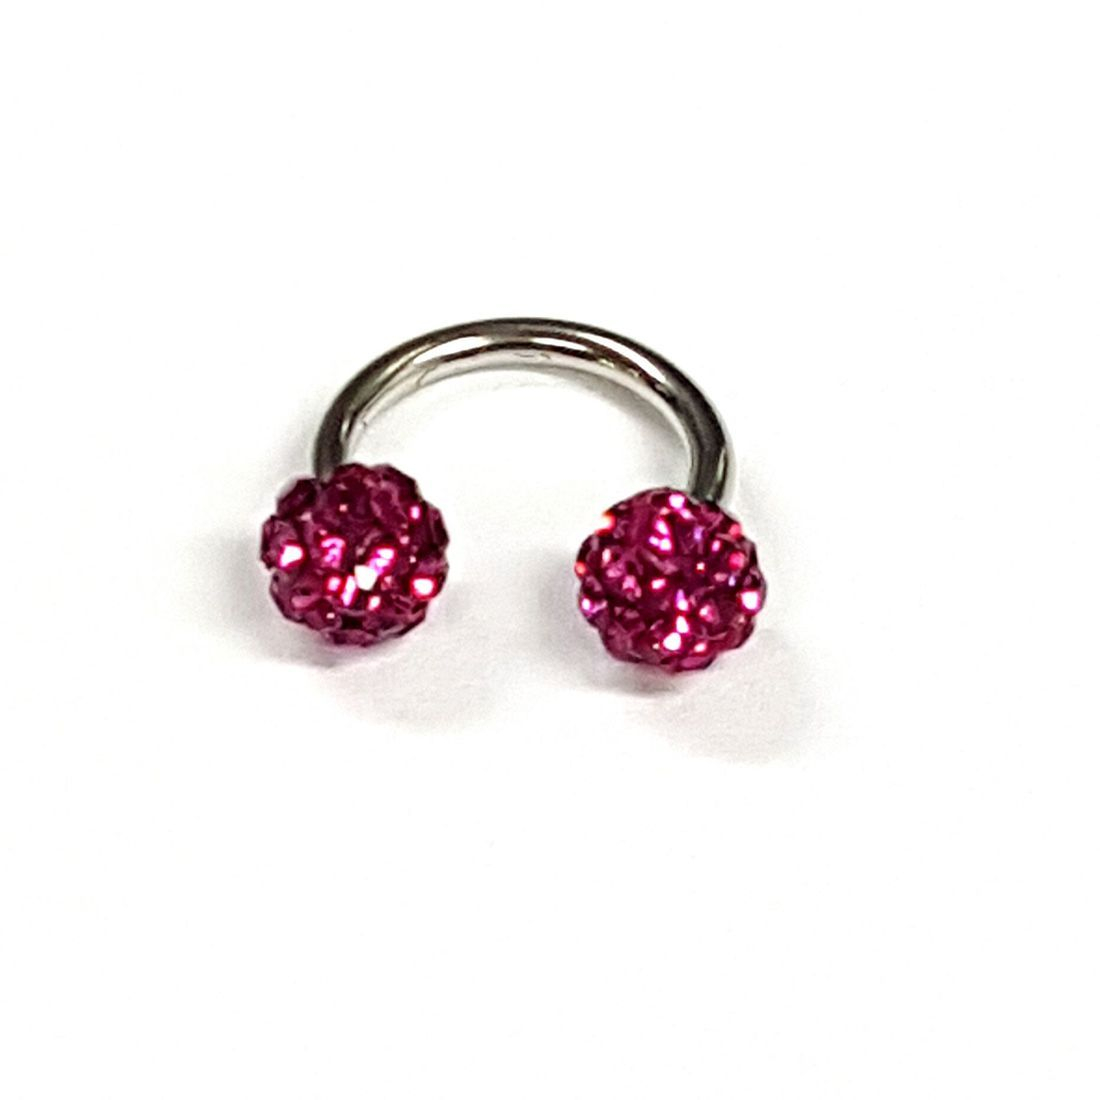 1.2mm x 8mm Horseshoe 4mm Fushia Crystal balls   available at Kazbah online and our Leicester City Centre Shop